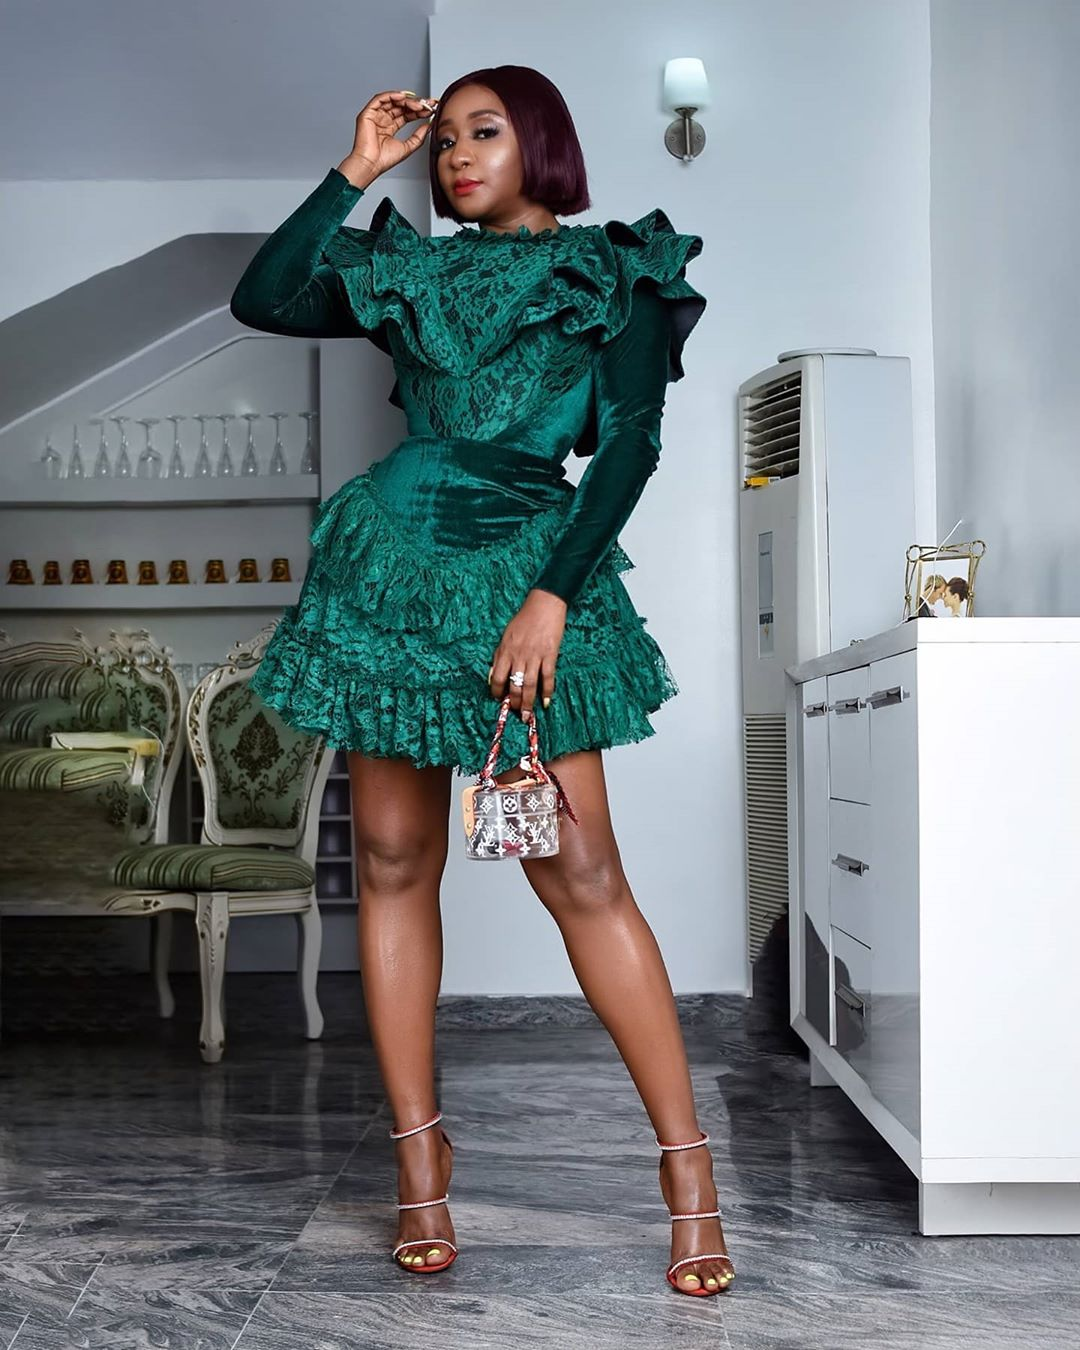 Ini Edo Makes A Fashion Stataement In A Casual Mini Gown